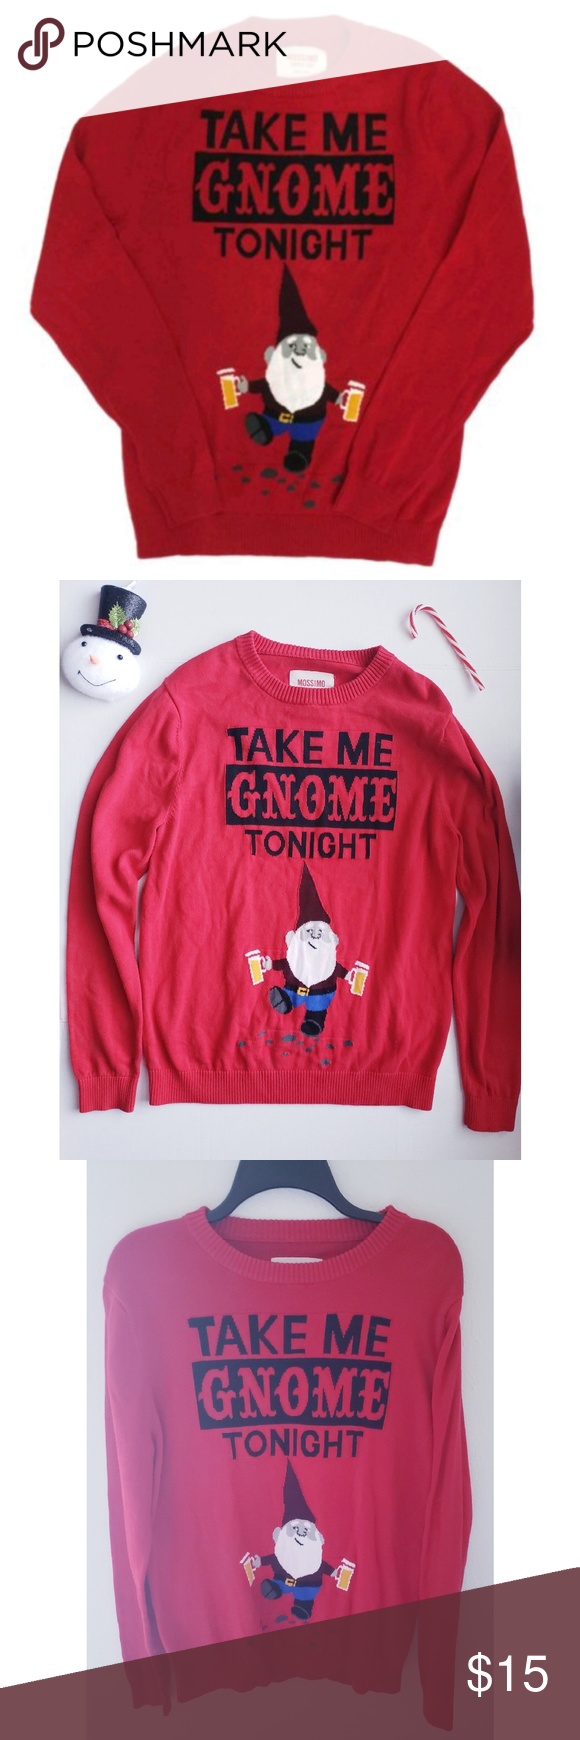 Gnome Ugly Christmas Sweater In 2018 My Posh Picks Pinterest